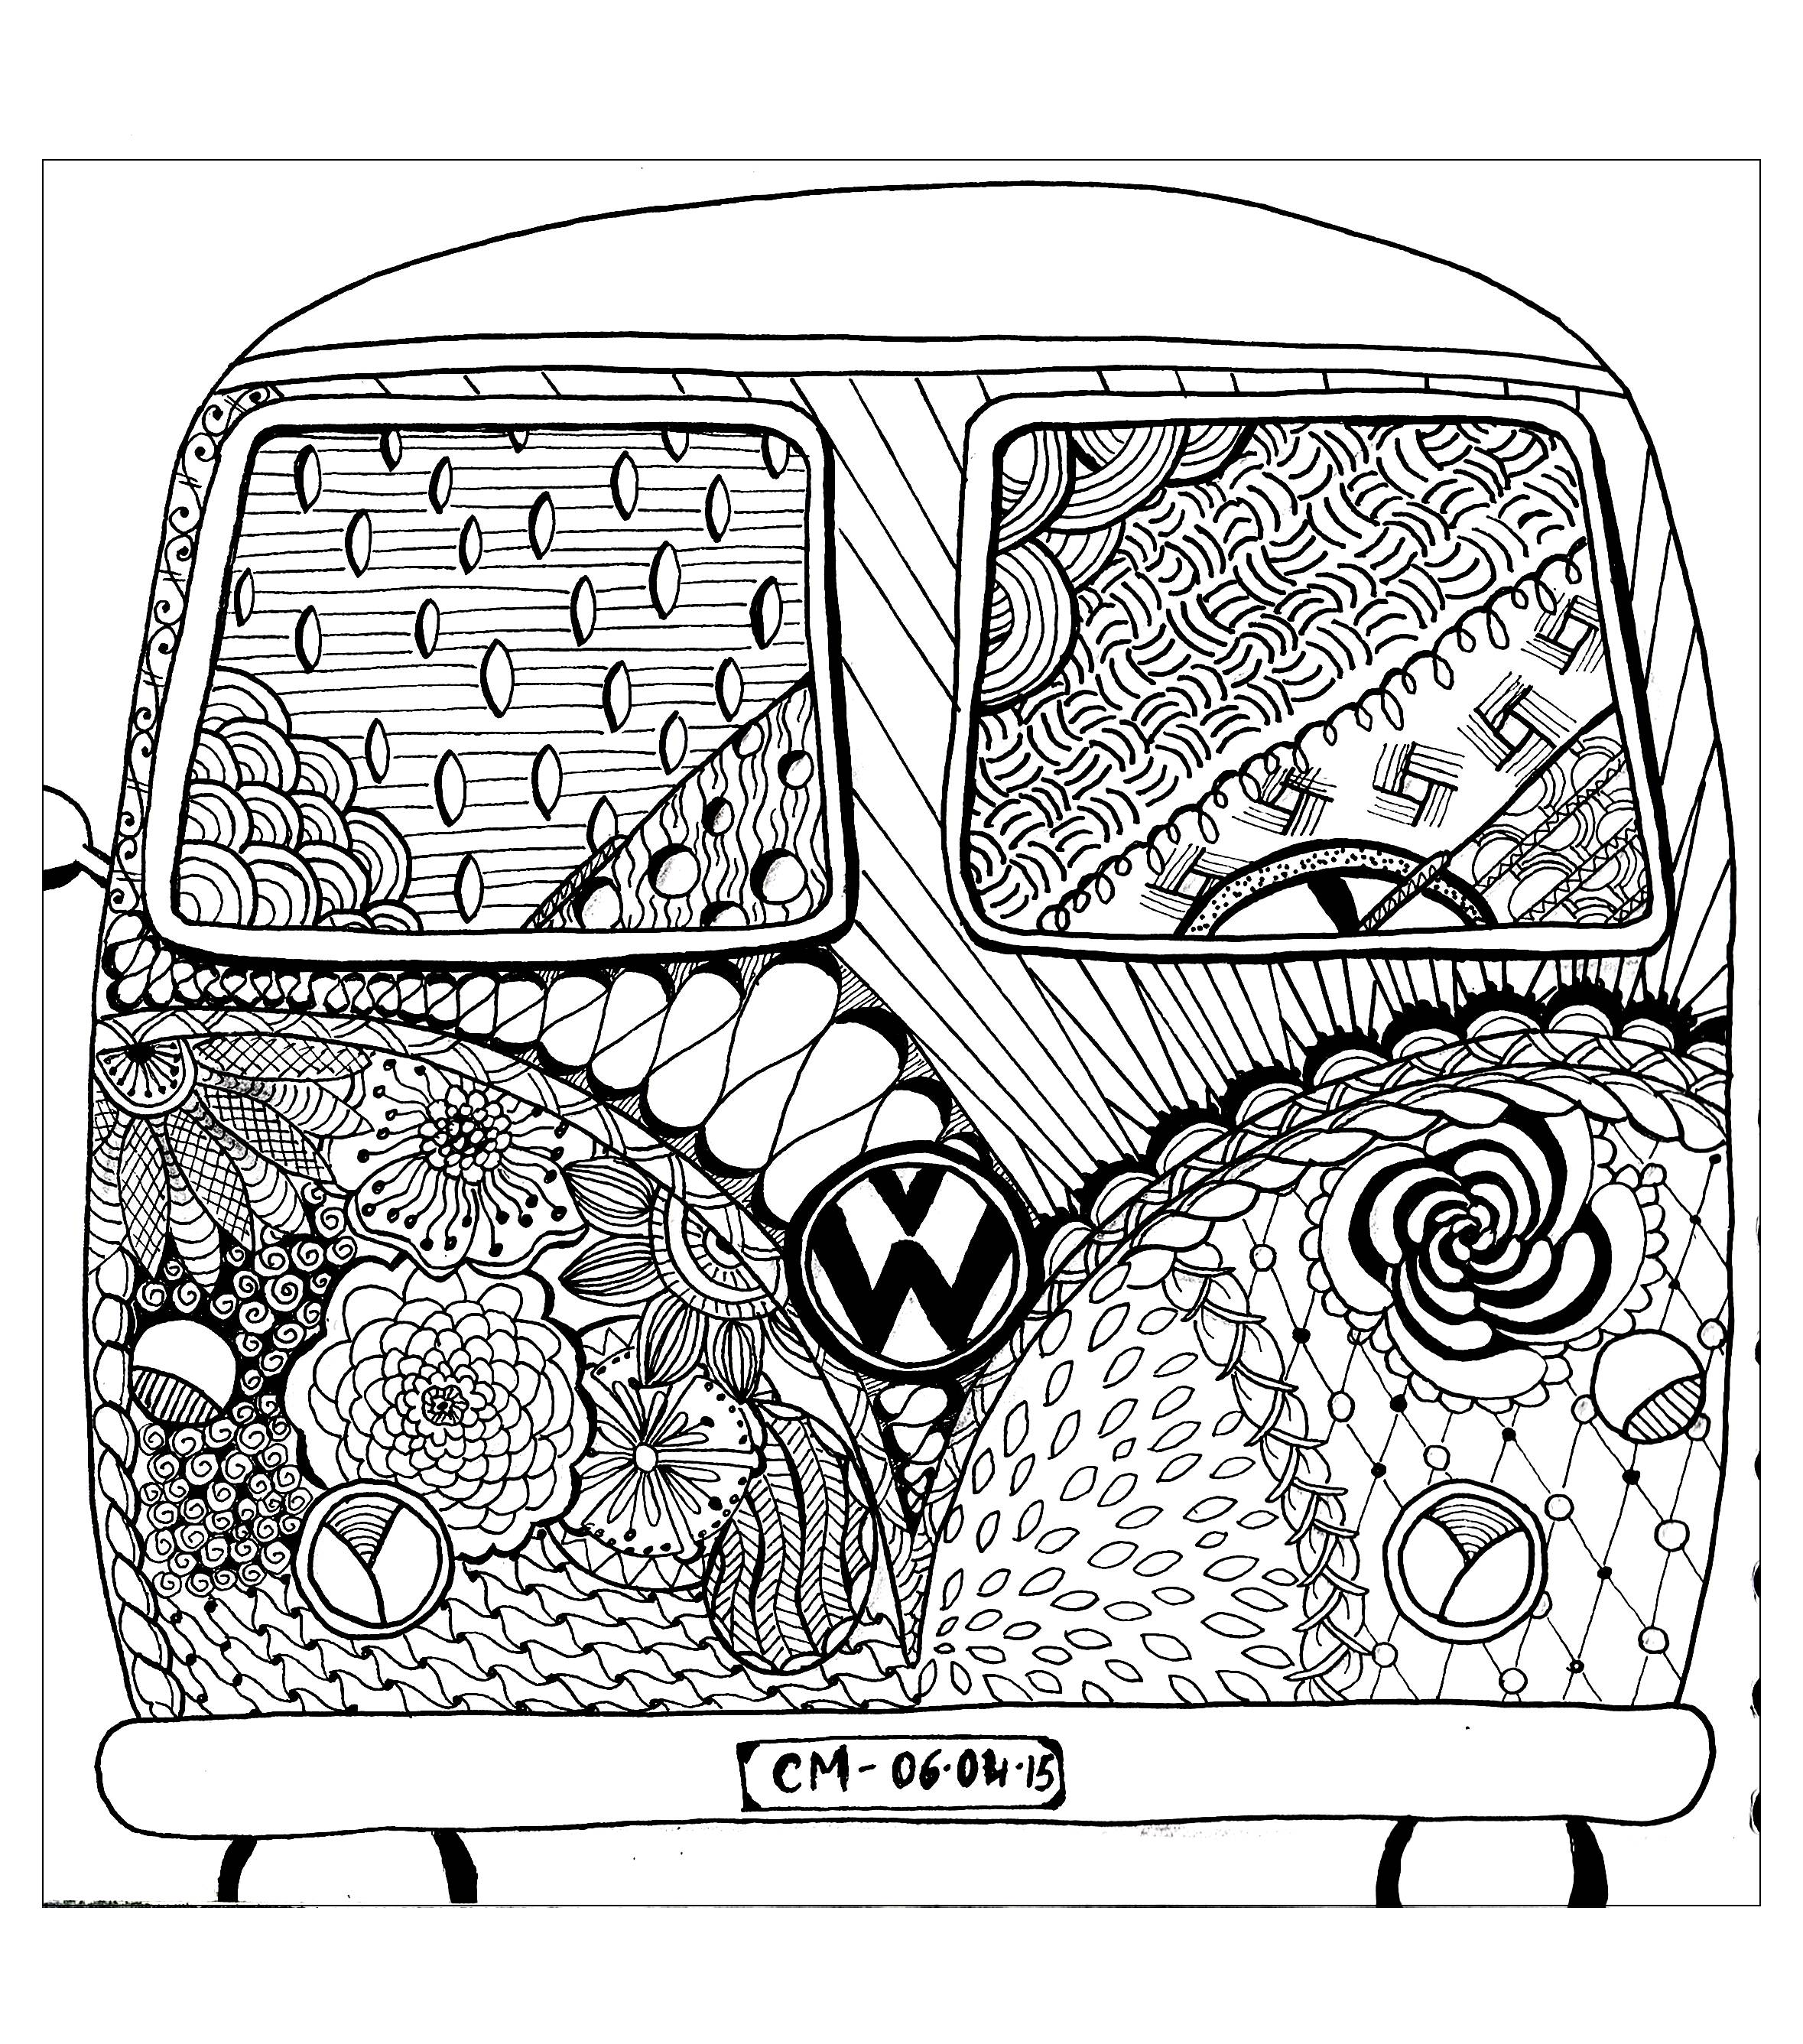 Hippie Coloring Pages Brilliant Cathym10  Zen And Anti Stress  Coloring Pages For Adults  Justcolor